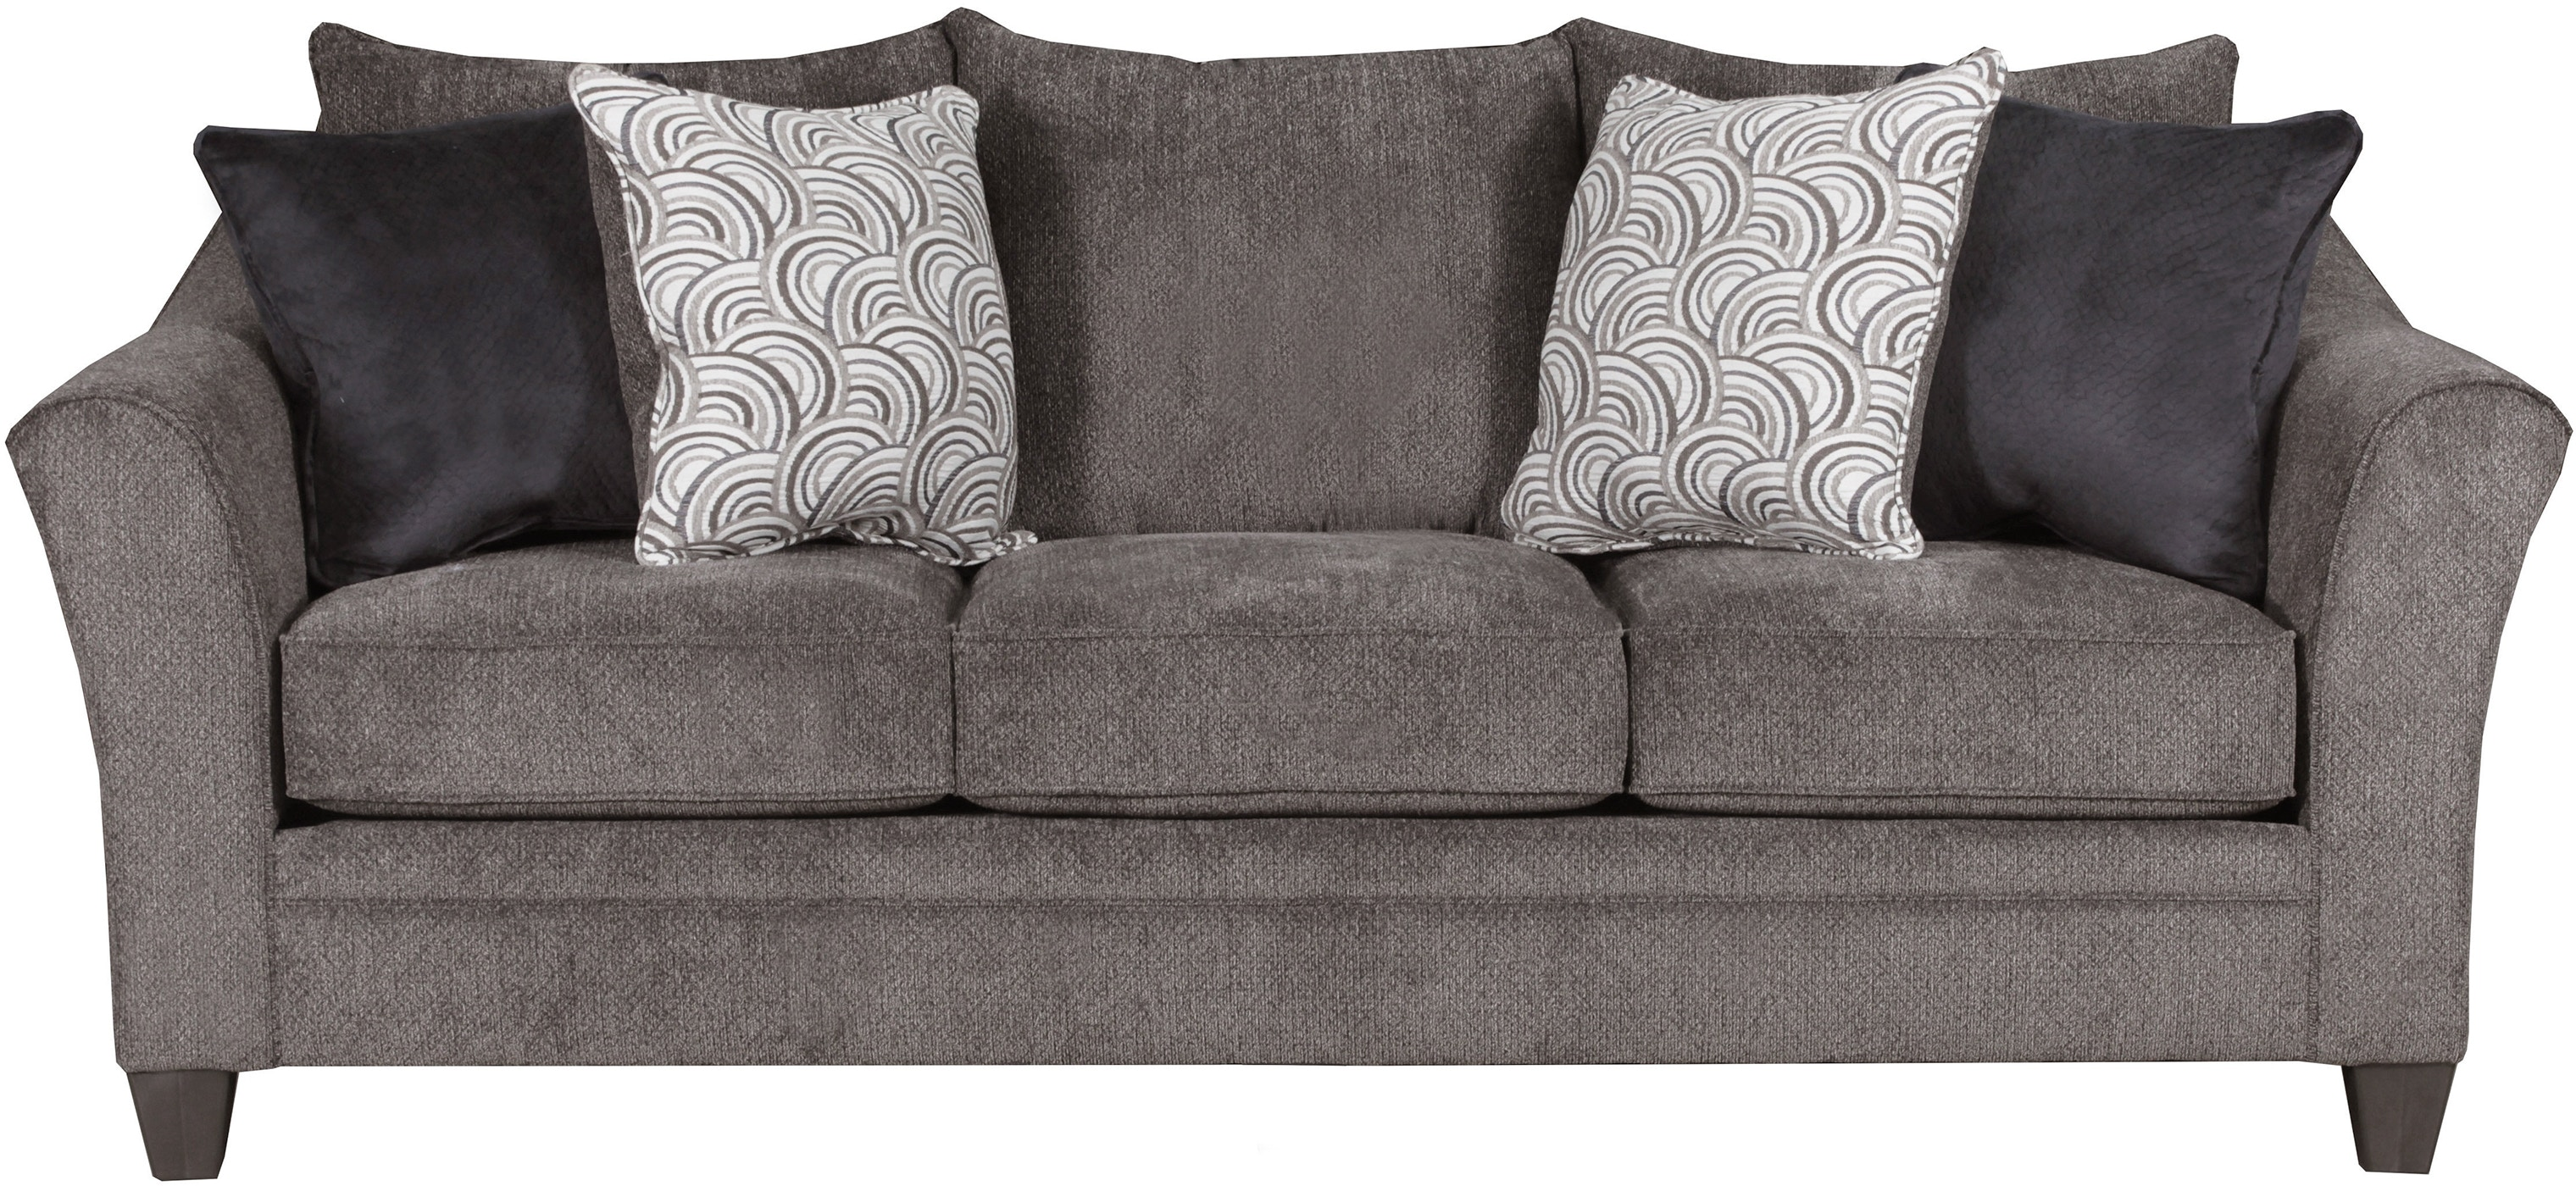 Living Room Albany Sofa Pewter ~ How To Coordinate Throw Pillows For Sofa And Chairs